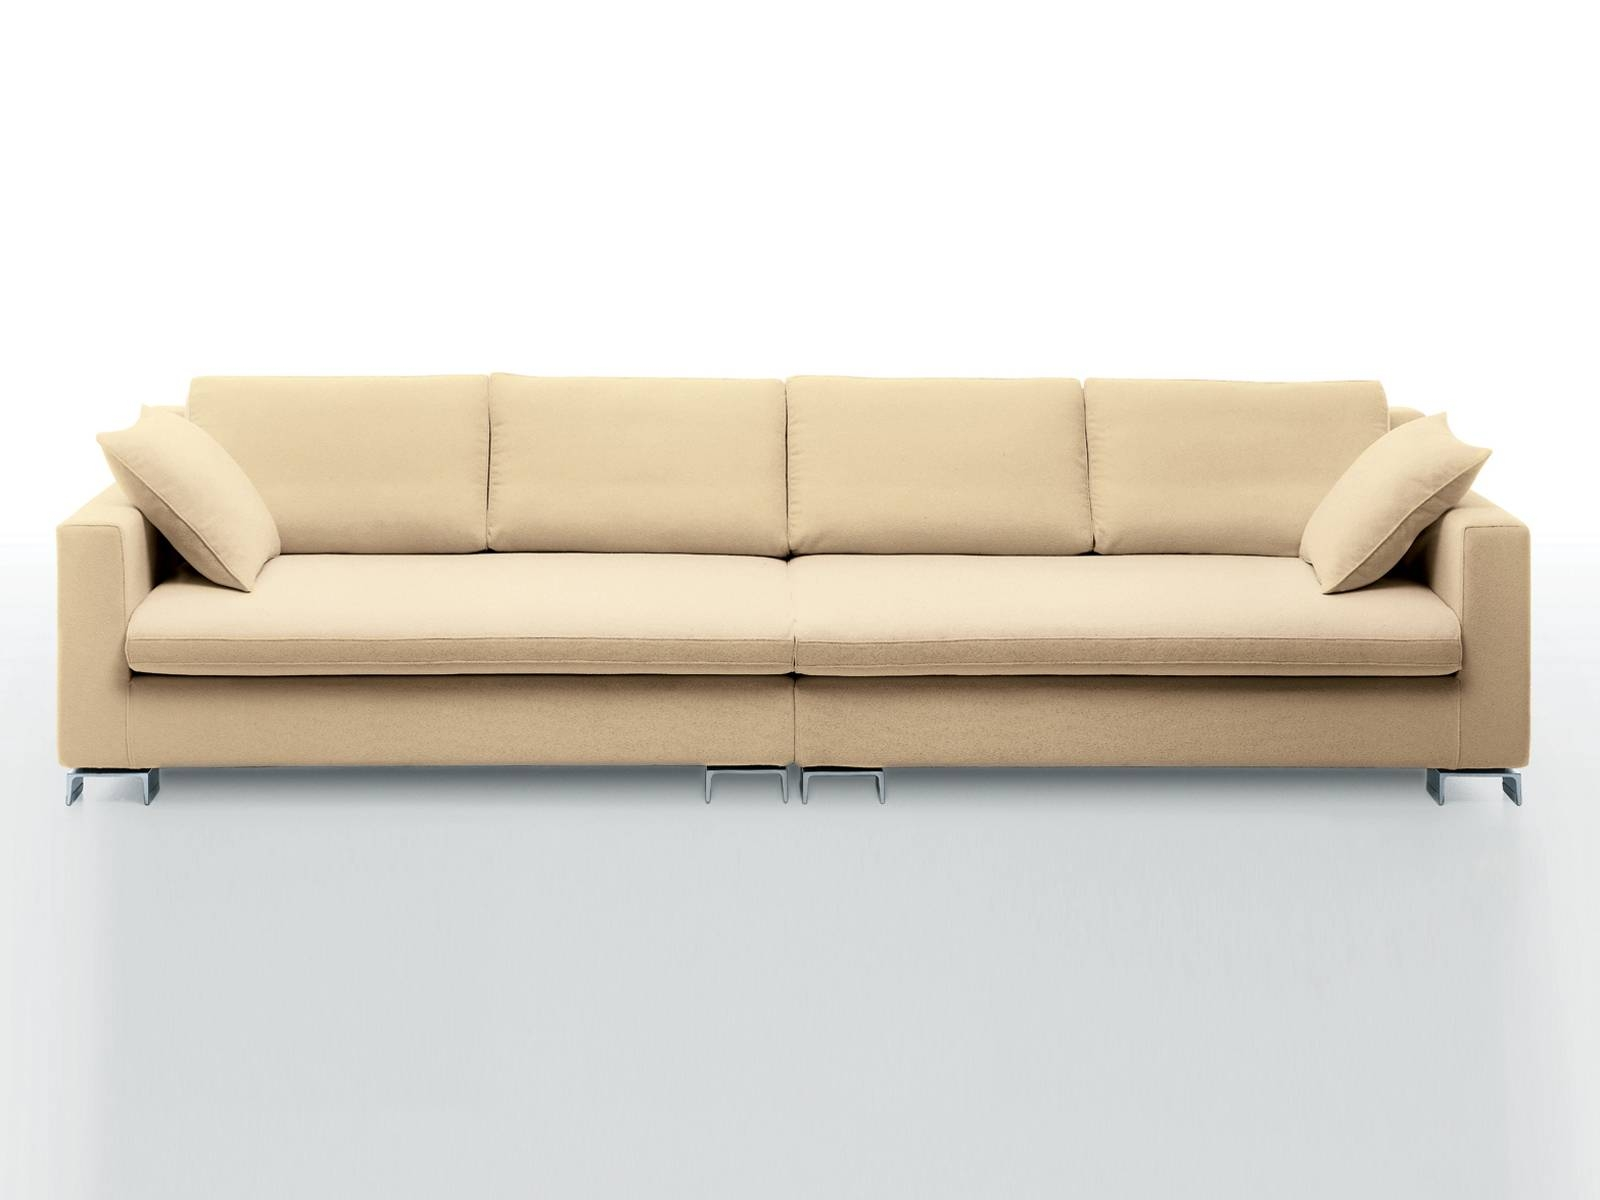 I 4 Mariani Sofas | Archiproducts pertaining to 4 Seat Sofas (Image 22 of 30)